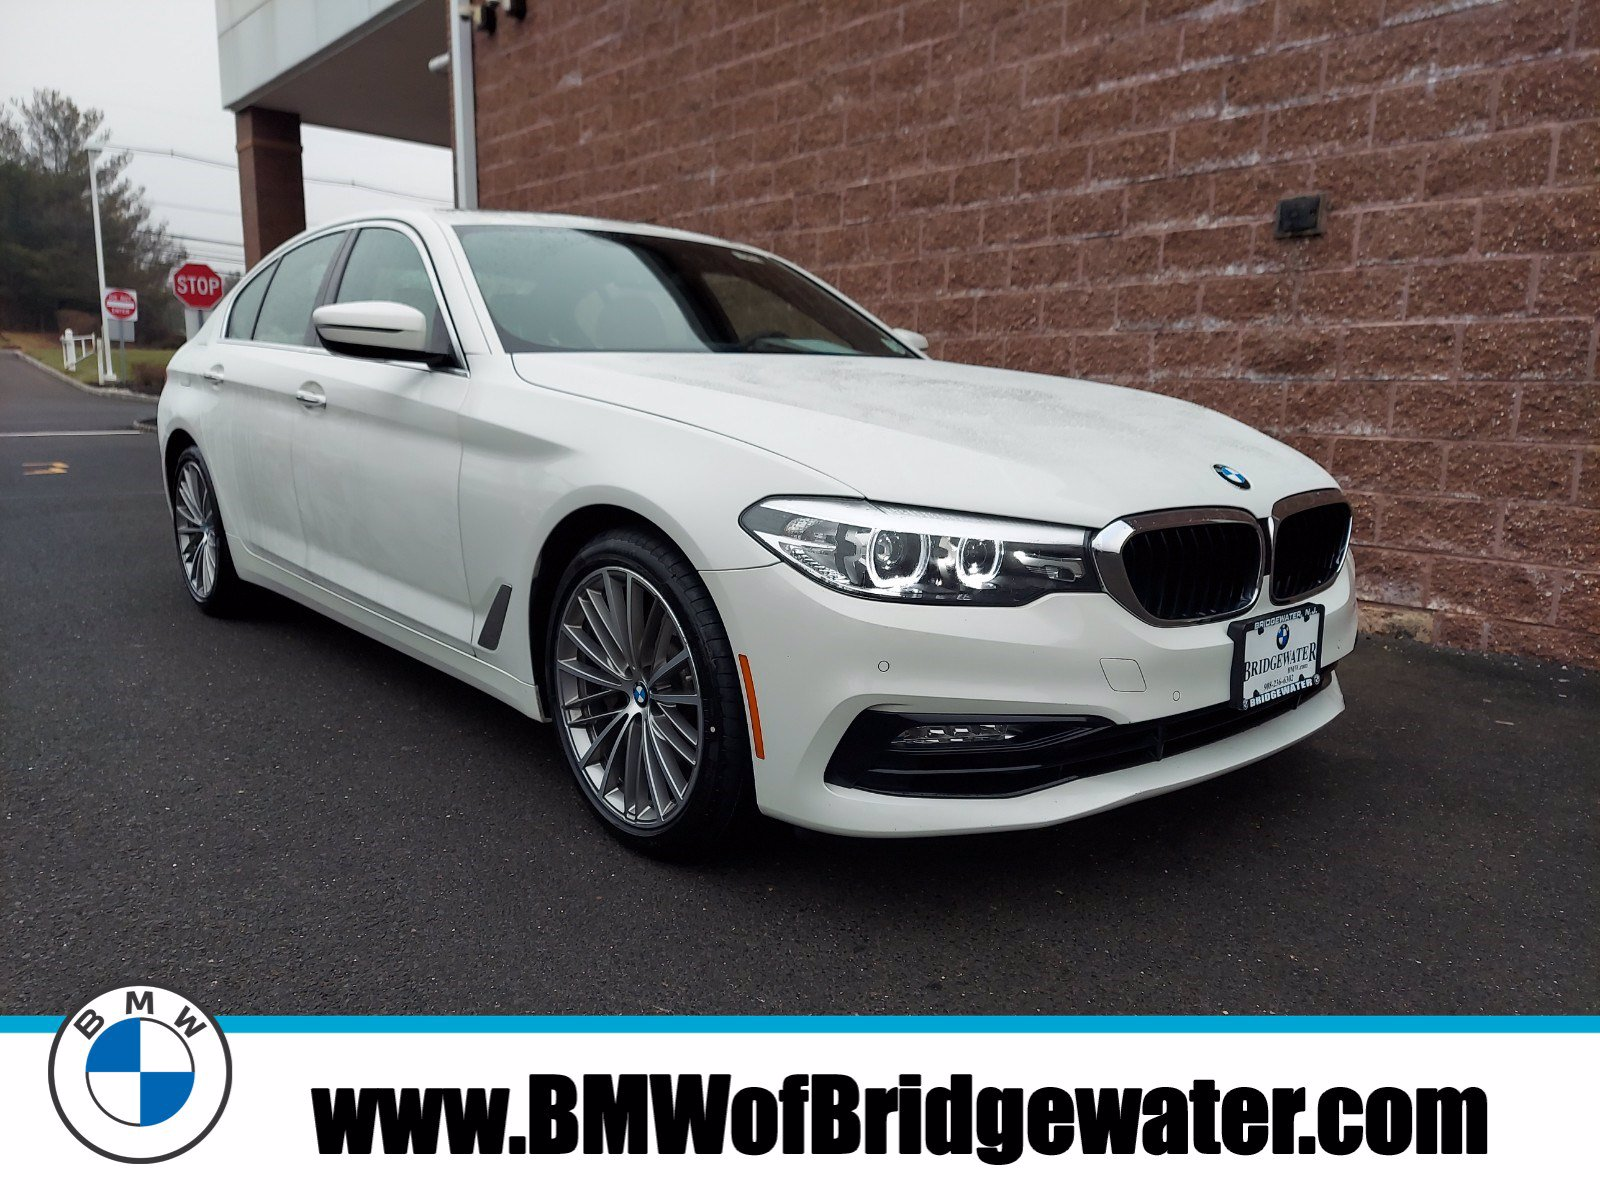 Pre Owned 2018 Bmw 540i For Sale At Bmw Of Bridgewater Vin Wbaje7c52jwc56404